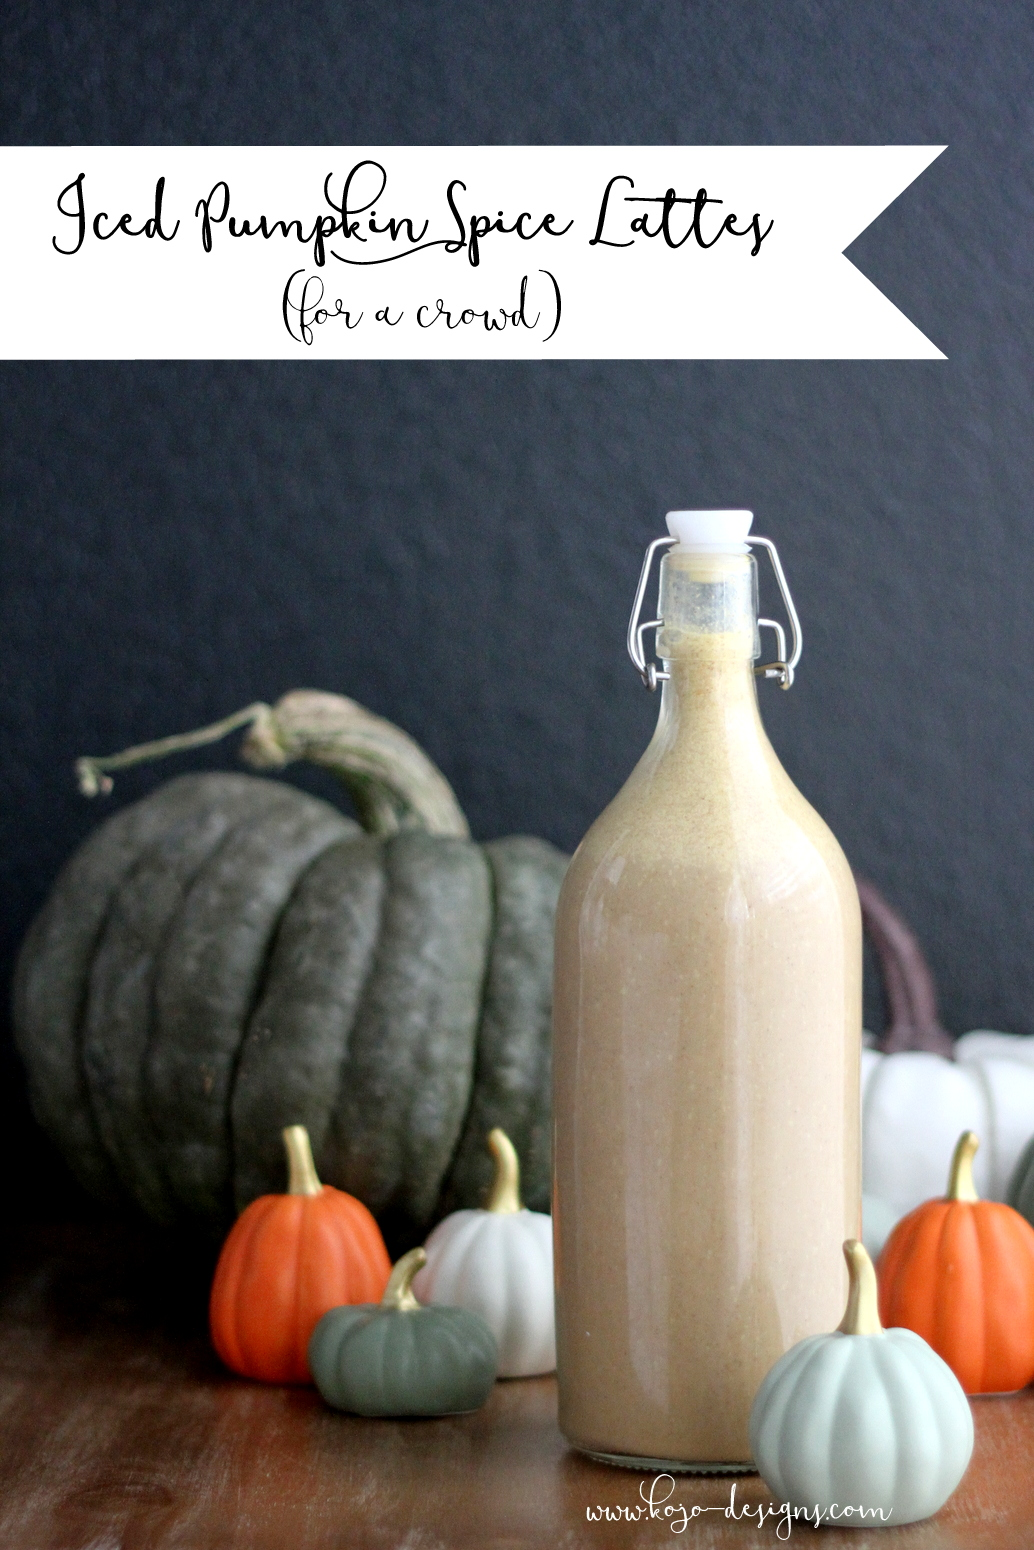 Iced Pumpkin Spice Lattes for a crowd (a recipe!)